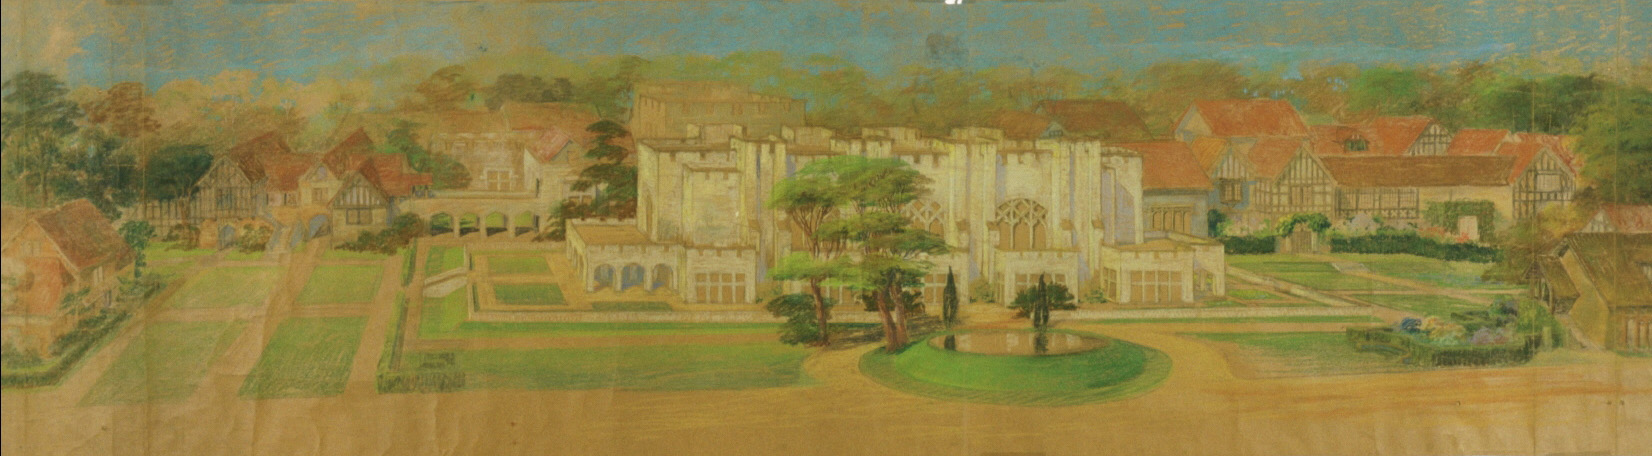 Maybeck & White, Loch Lin Site, Court with Great Hall surrounded by half-timbered cottages, 1923, Pastel, graphite on kraft paper, 29 x 106 in.